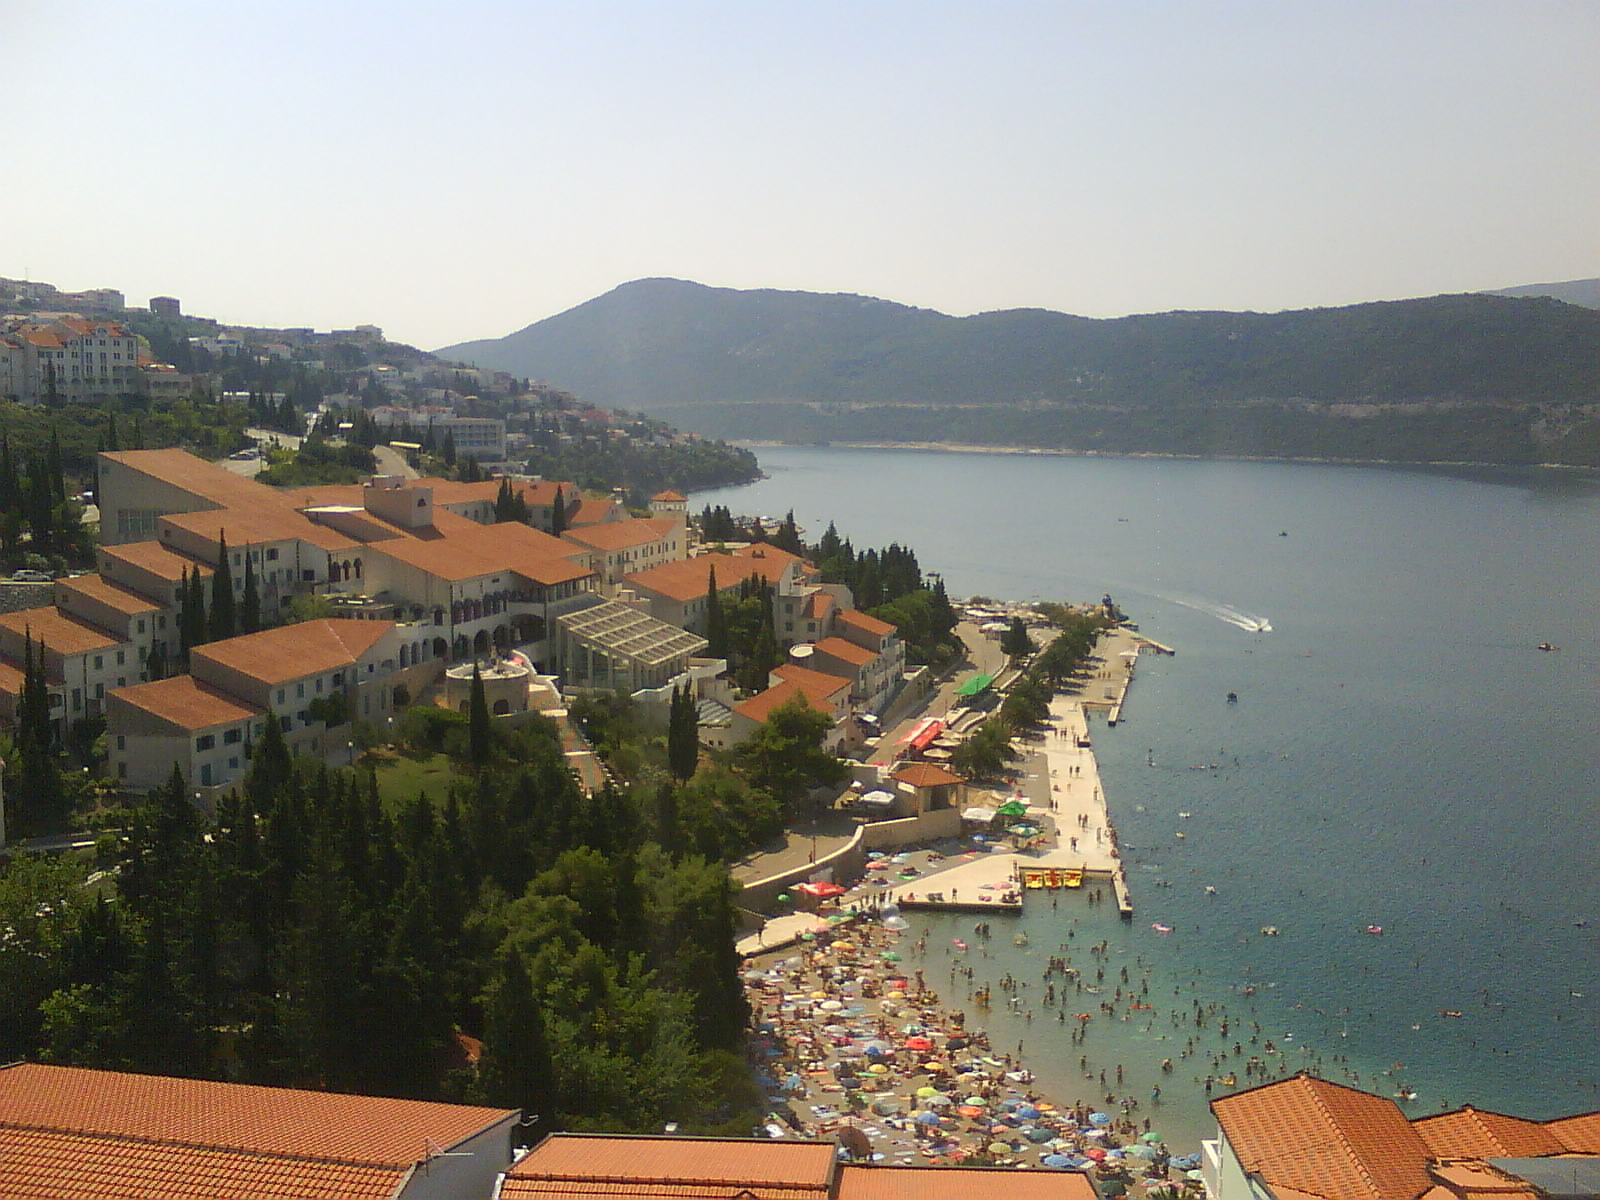 An Interesting Look At The Ancient City Walls Of Dubrovnik